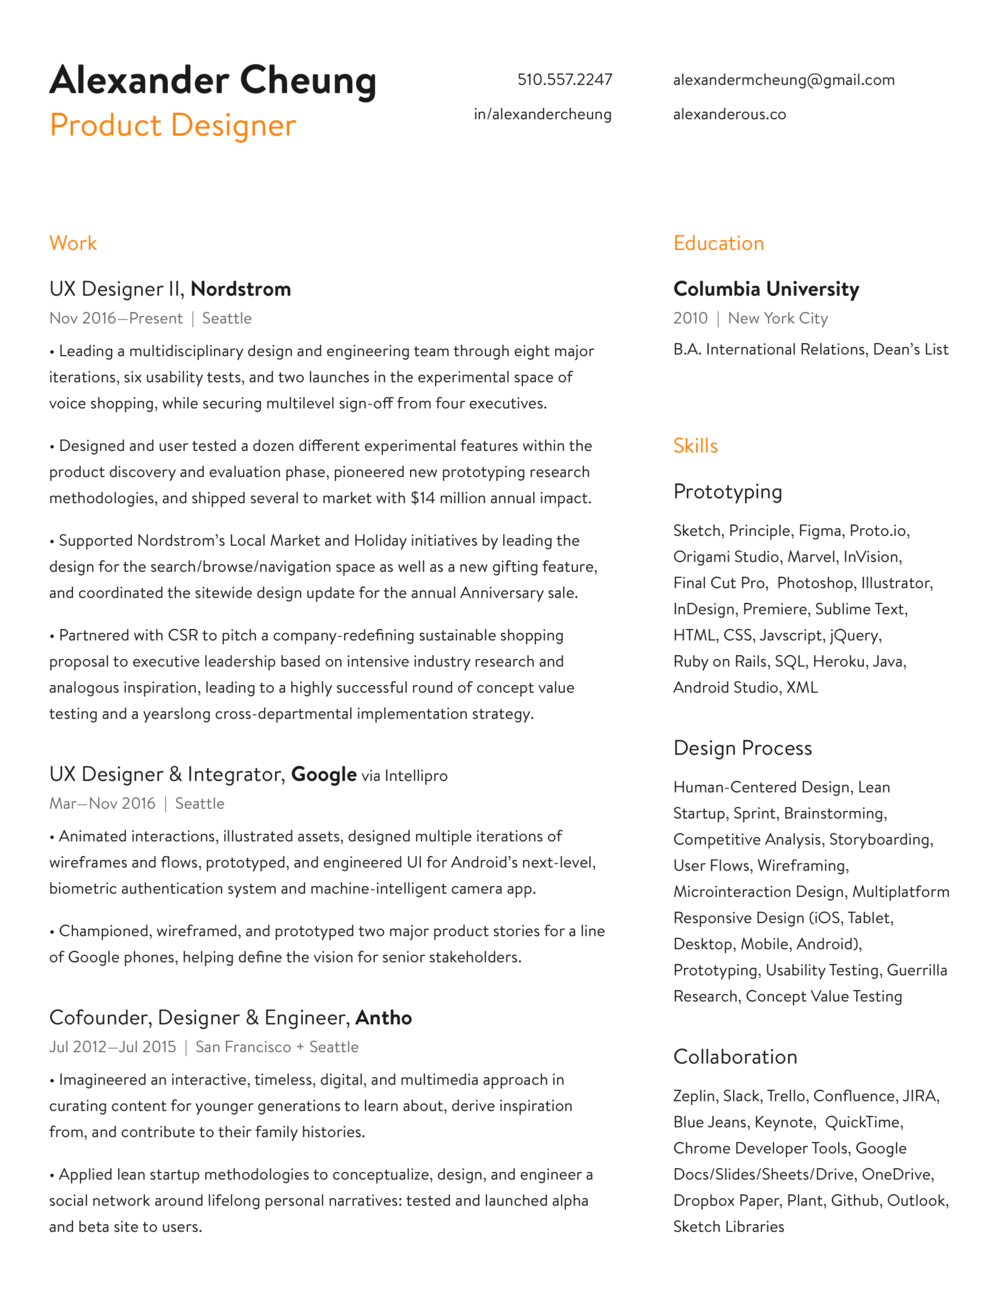 Alexander Cheung Product Design Resume.png